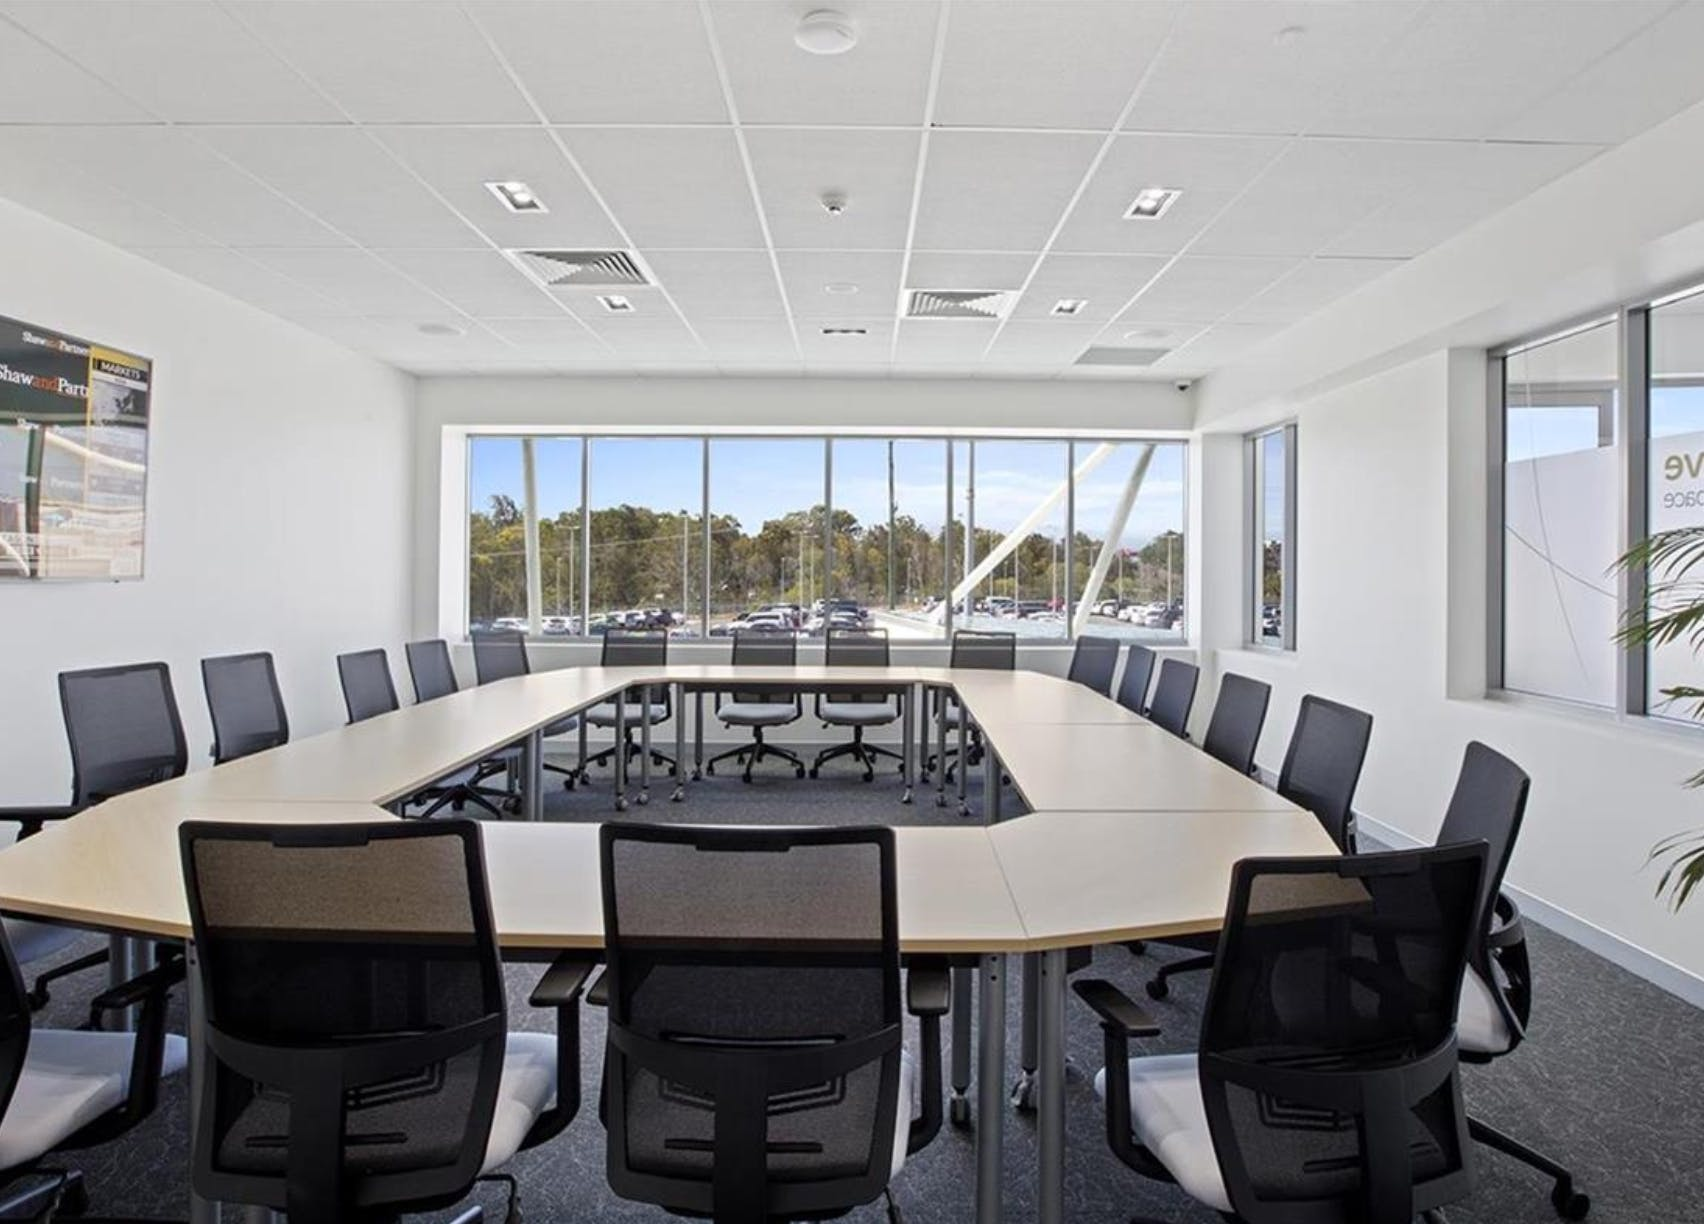 The Manuka Boardroom, meeting room at The Hive Coworking & Office Space, image 1